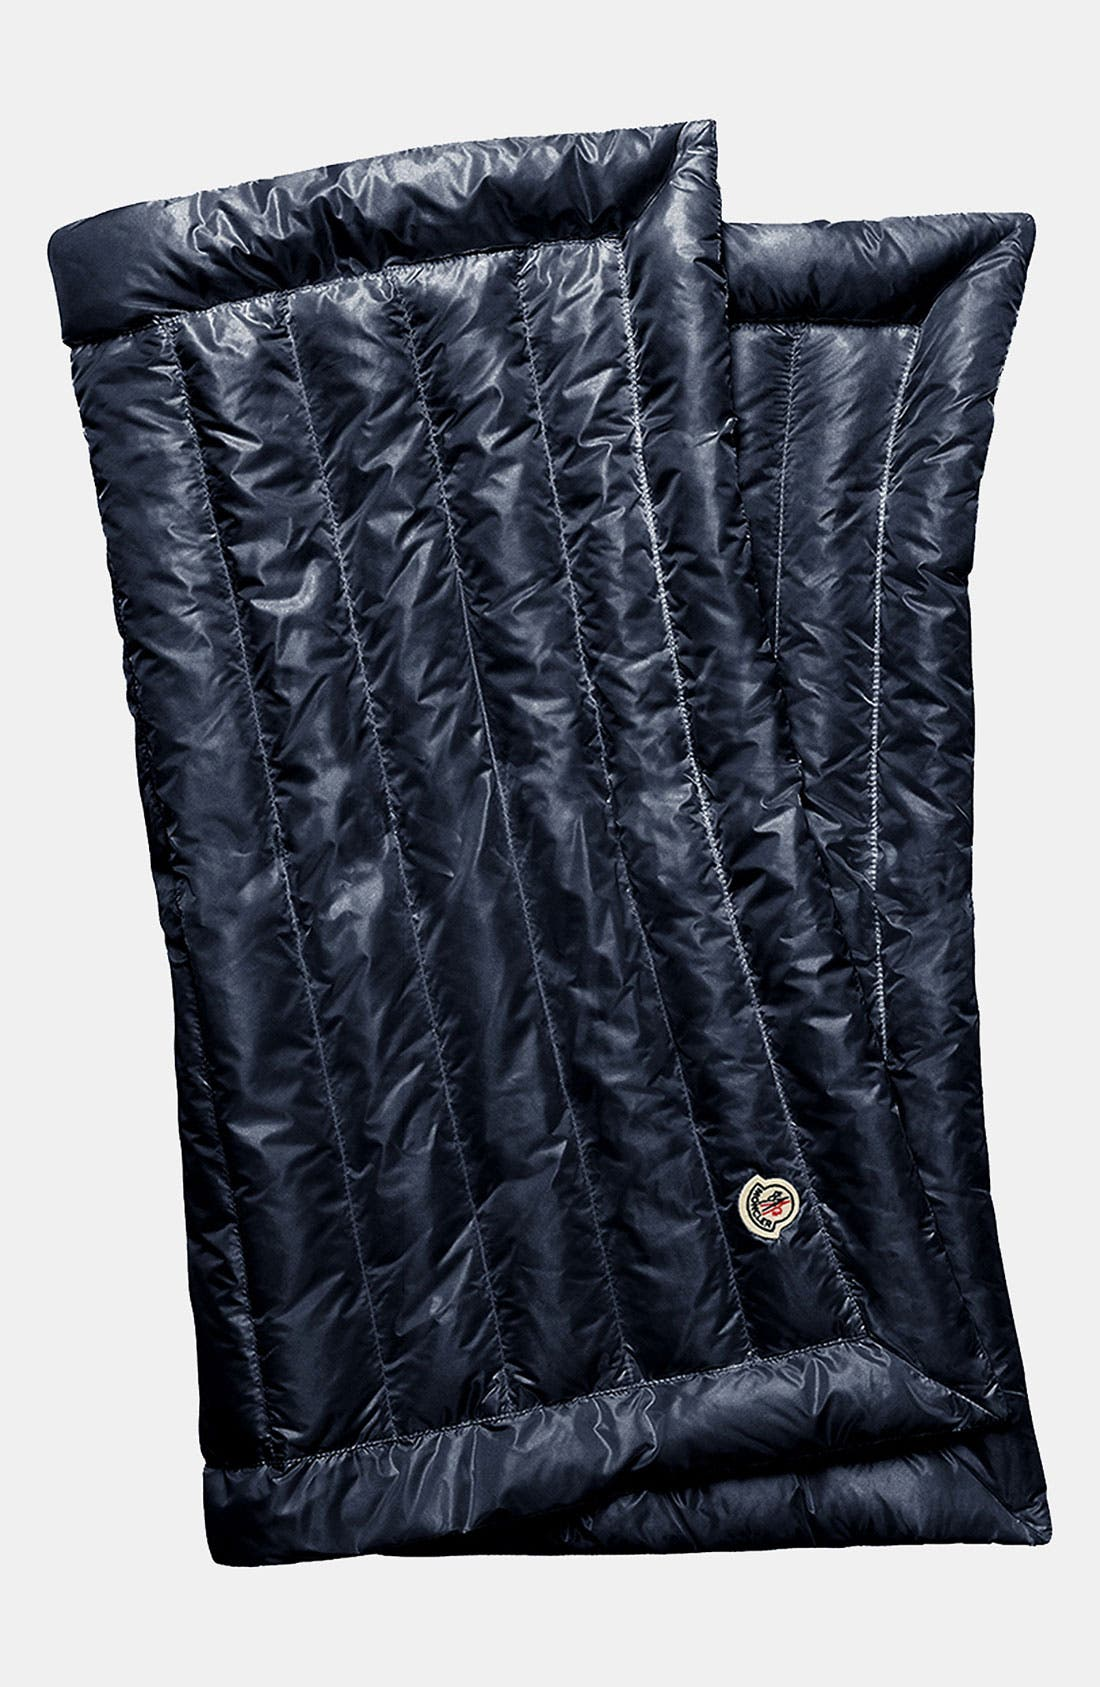 Alternate Image 1 Selected - Moncler 'Couverture' Blanket